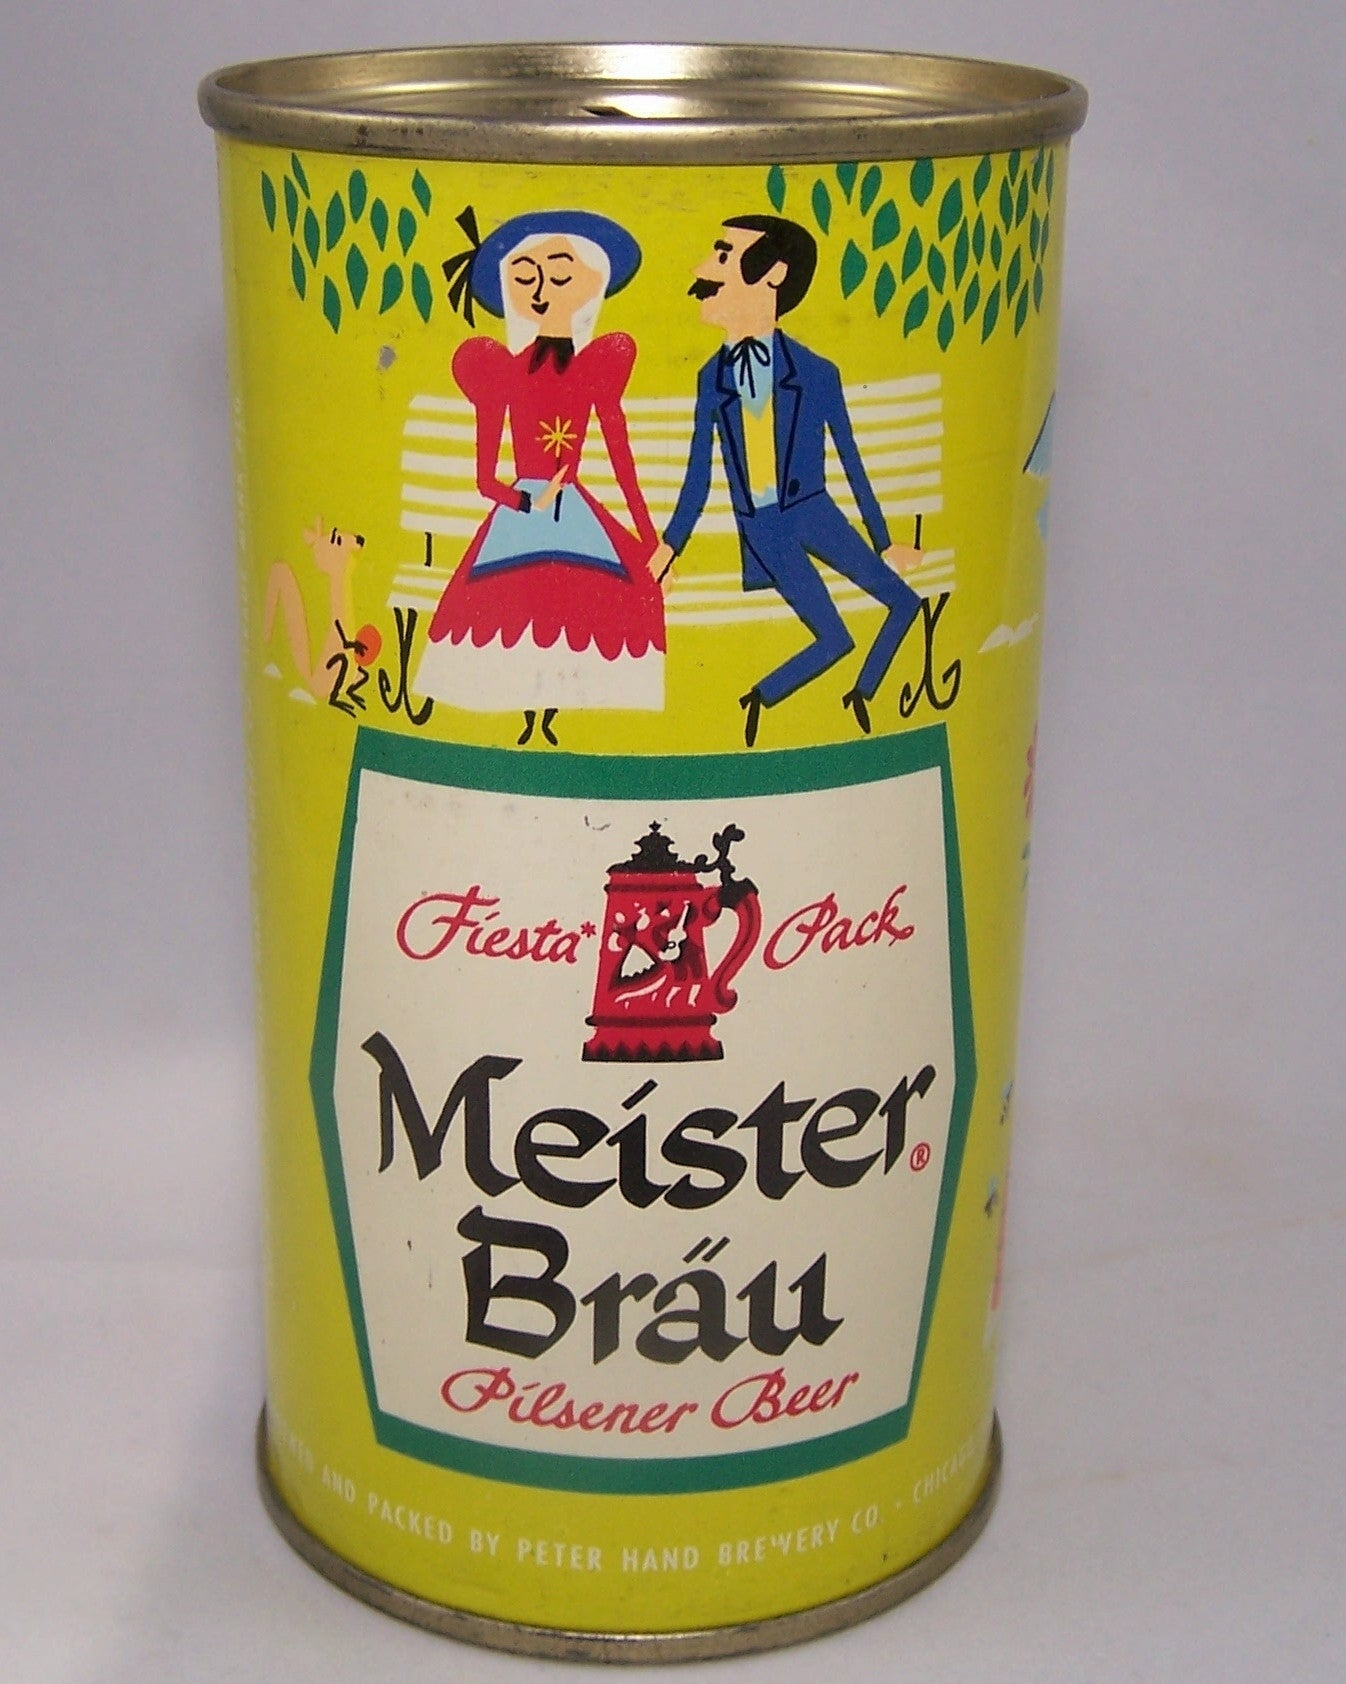 Meister Brau Fiesta Pack, USBC 98-7, Grade A1+ Sold on 9/10/15